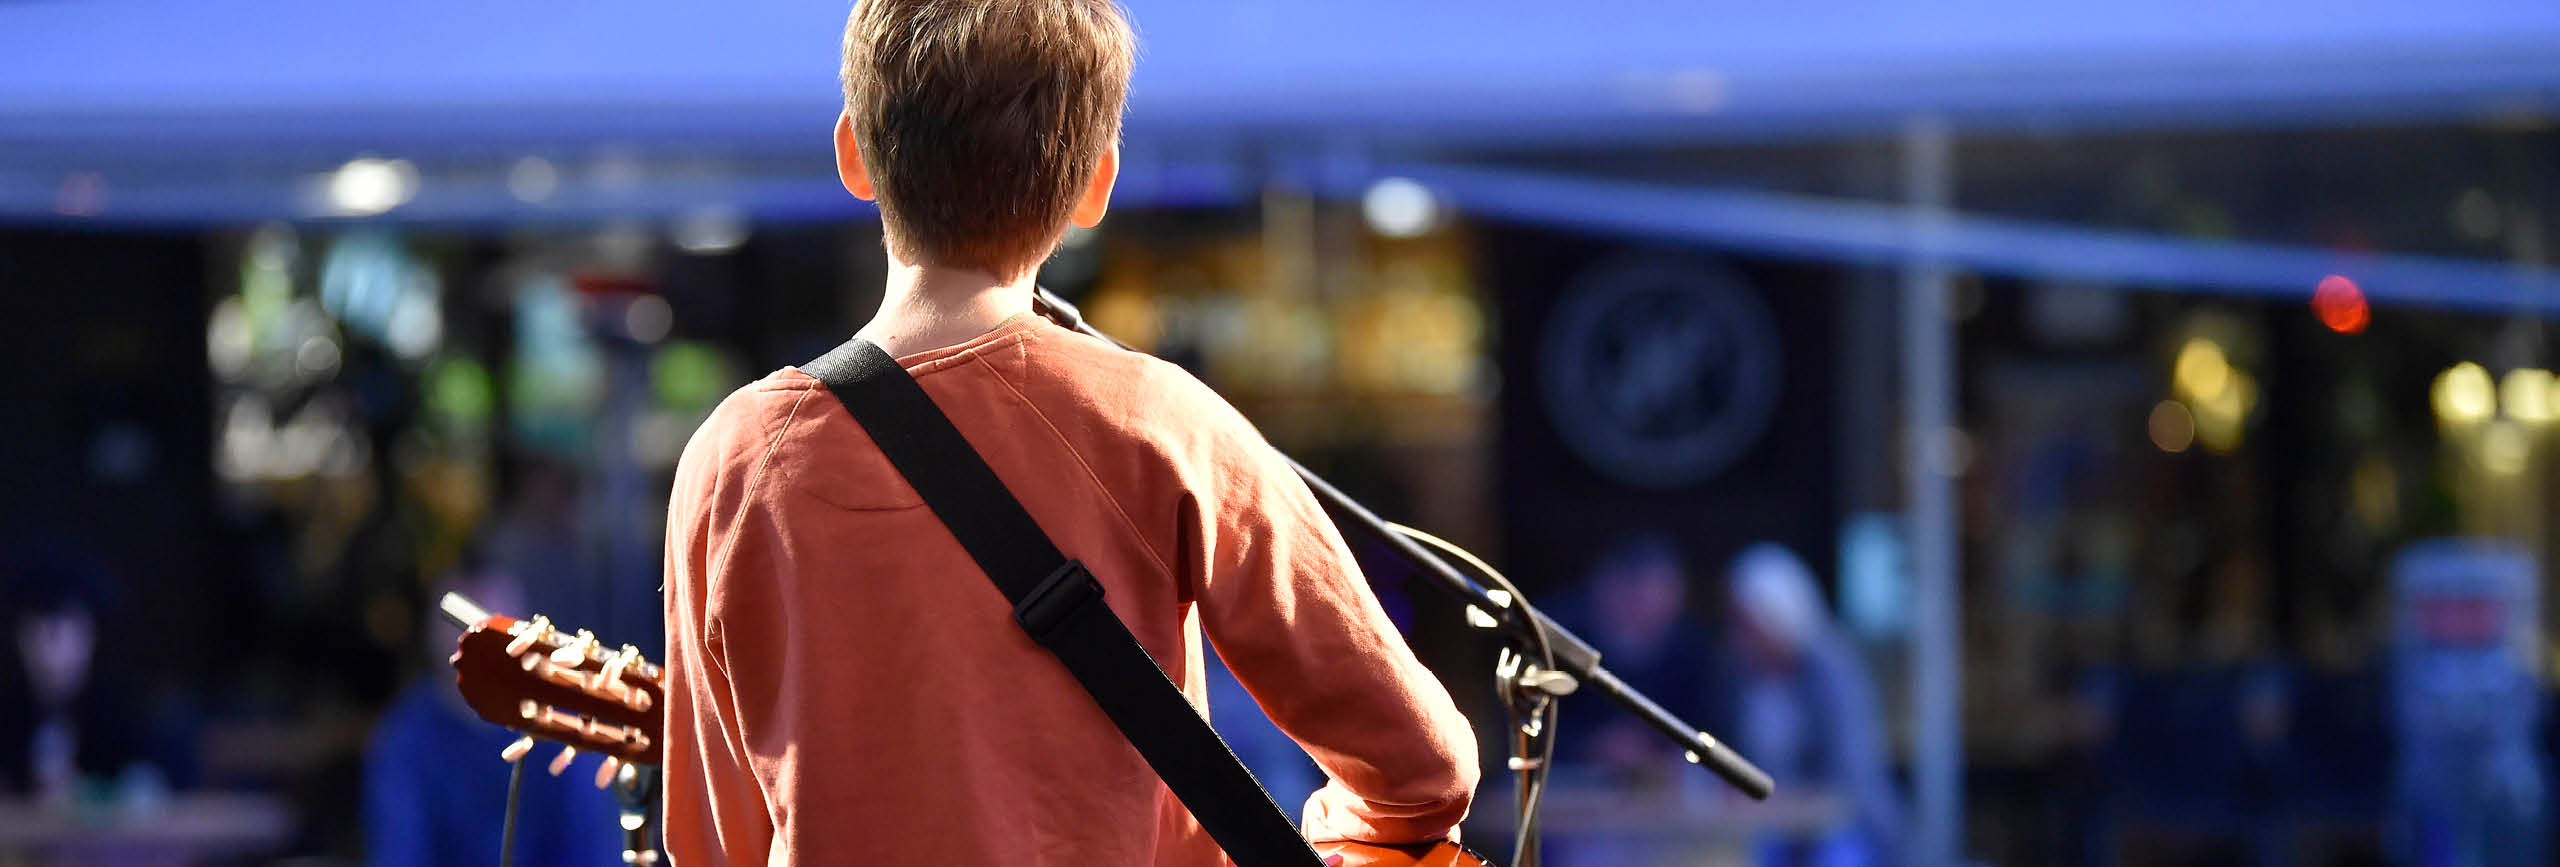 Boy playing guitar singing, from behind